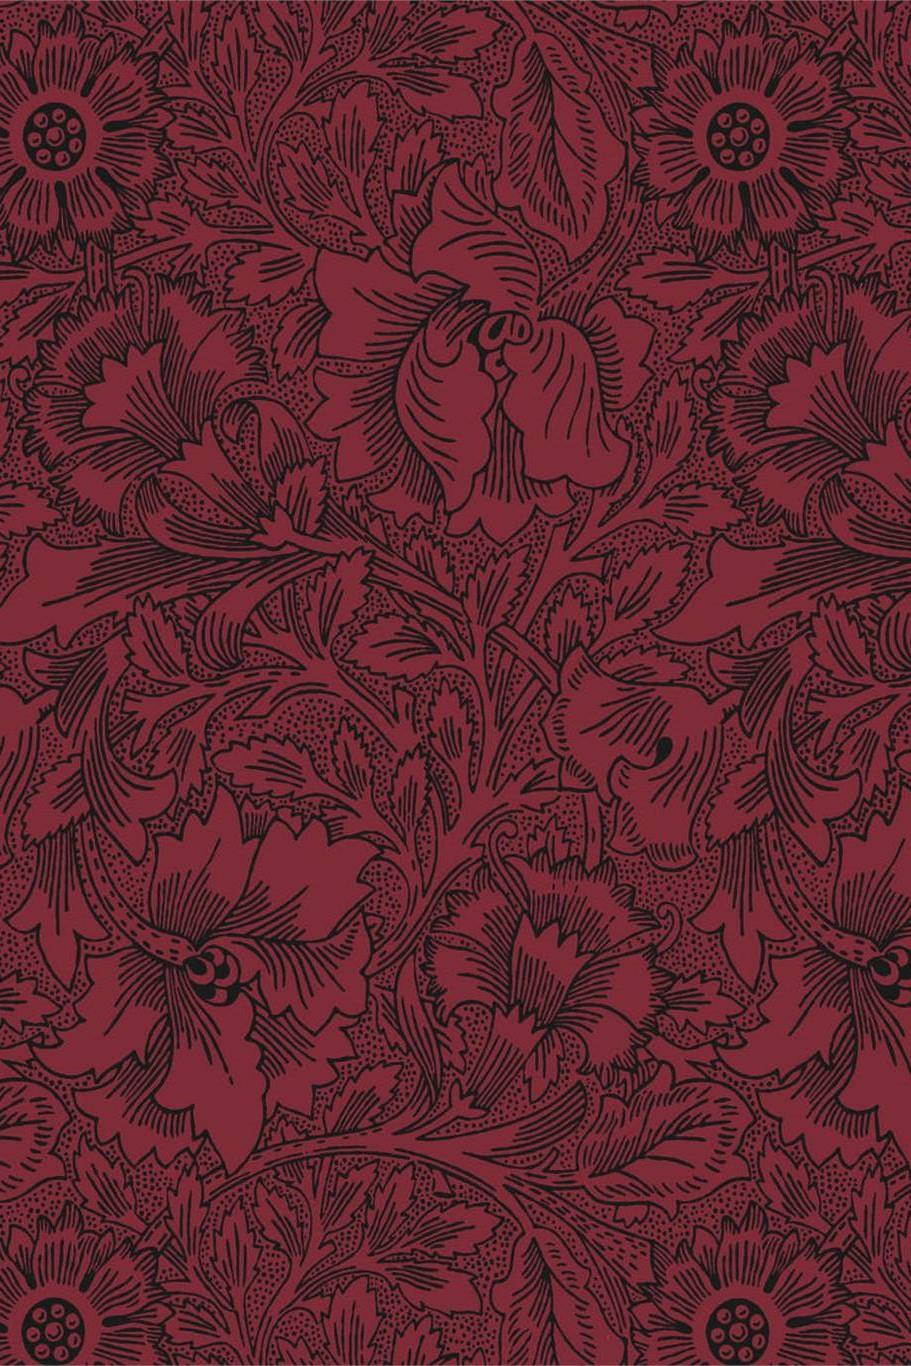 Morris & Co Queen Square Poppy Wallpaper DBPW216956